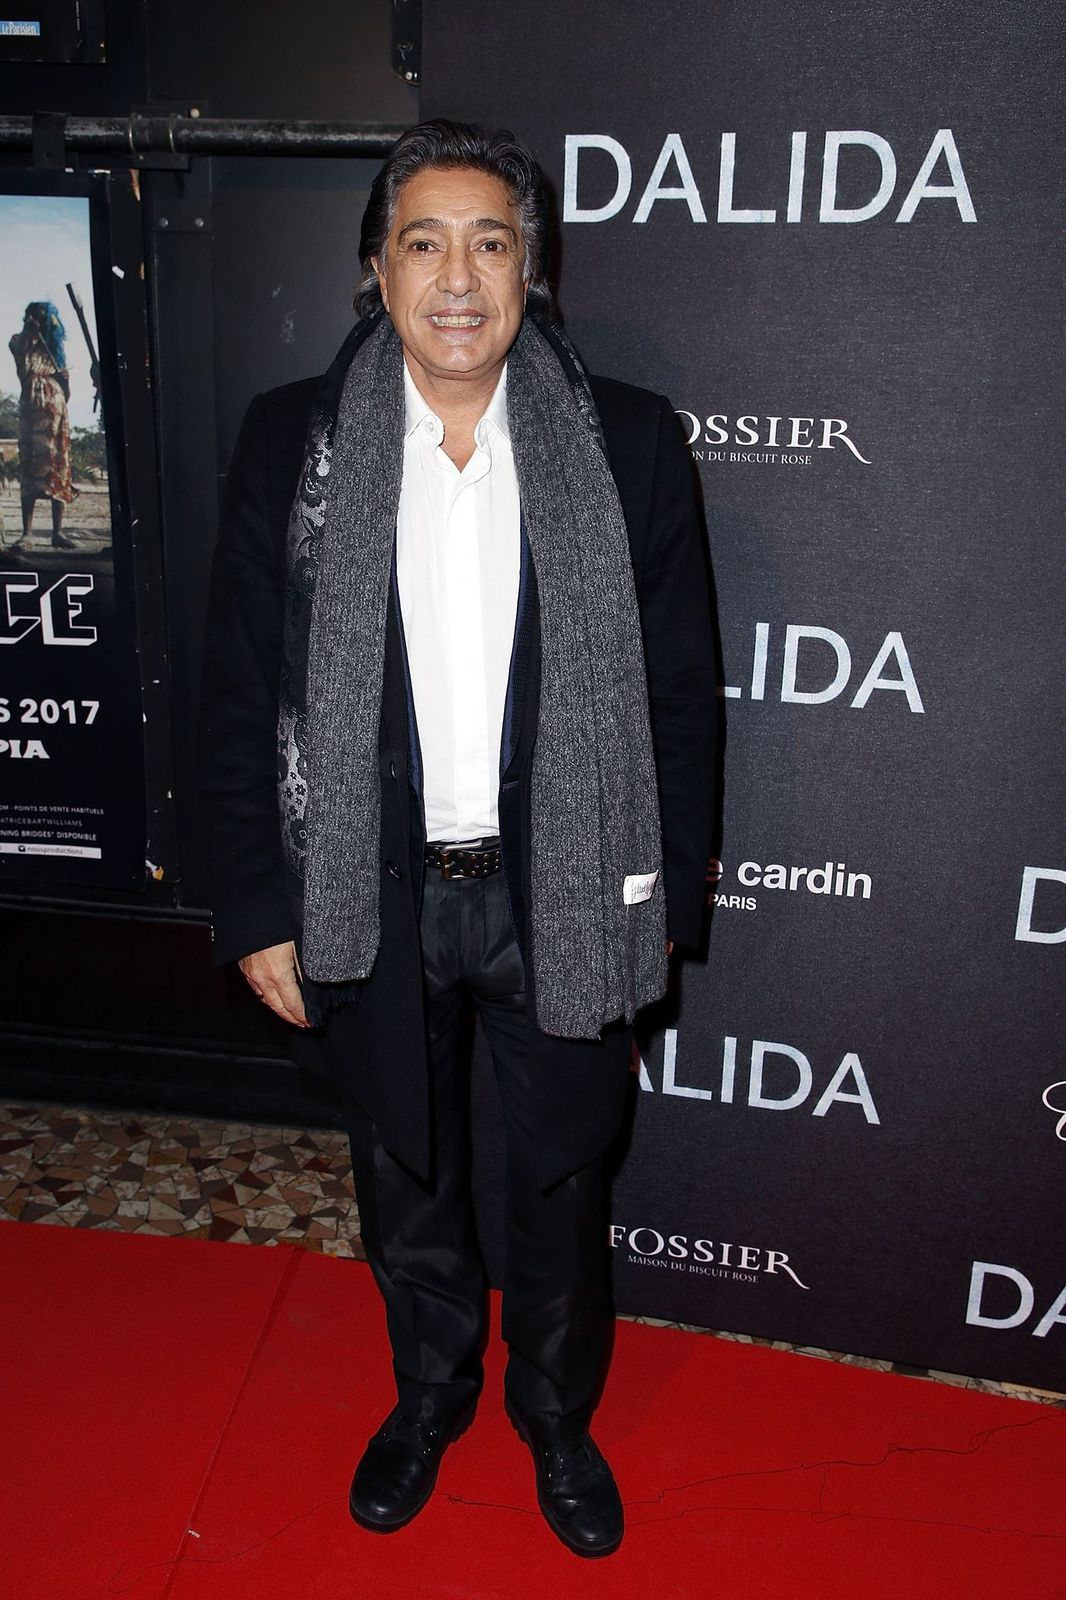 "Le chanteur Frédéric François assiste à la première de ""Dalida"" à l'Olympia le 30 novembre 2016 à Paris, France. 